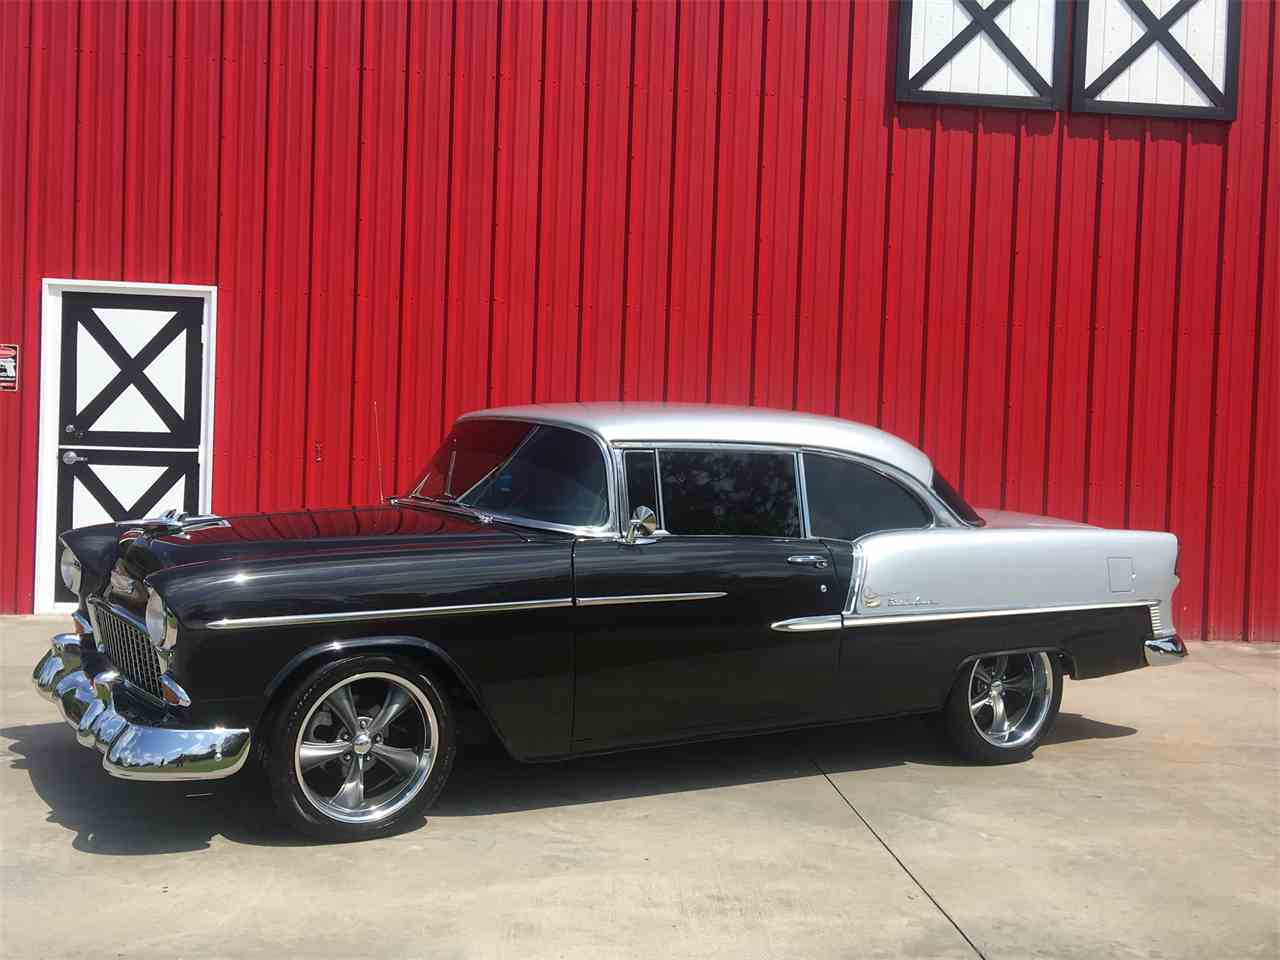 1955 chevrolet pro street truck youtube - 1955 Chevrolet Bel Air 973777